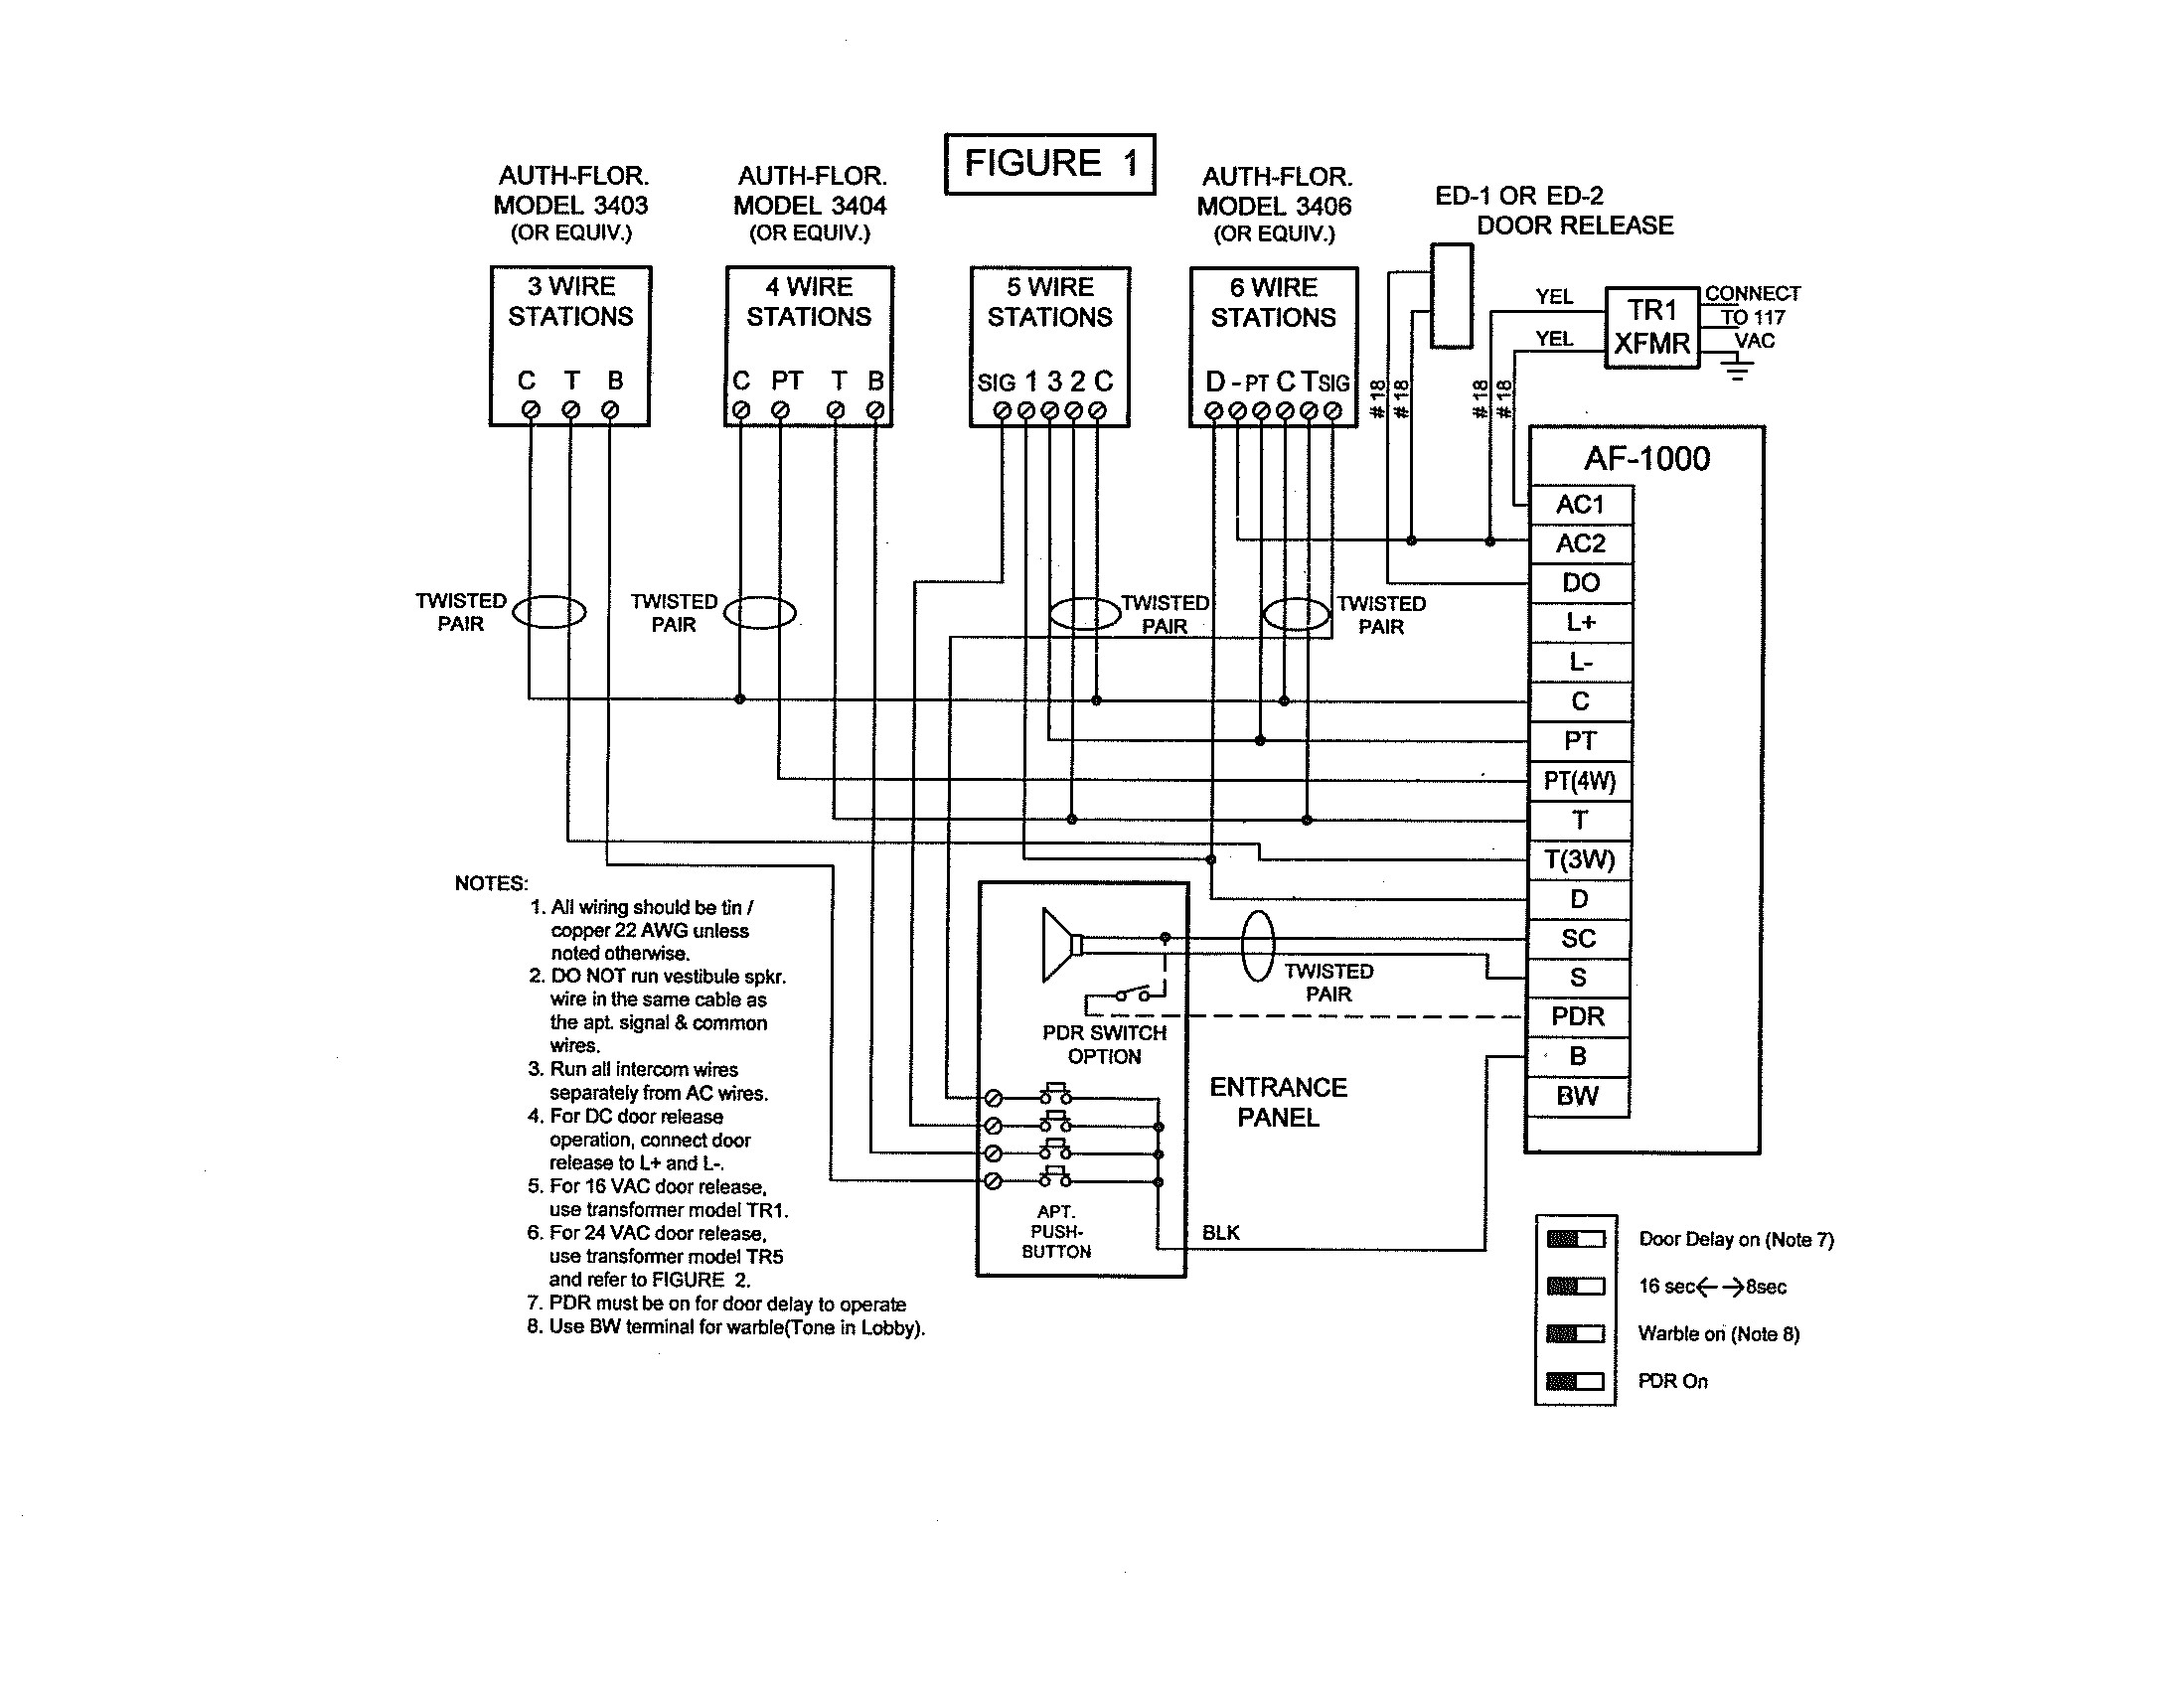 Ebook Intercom Wiring Instruction Diagram